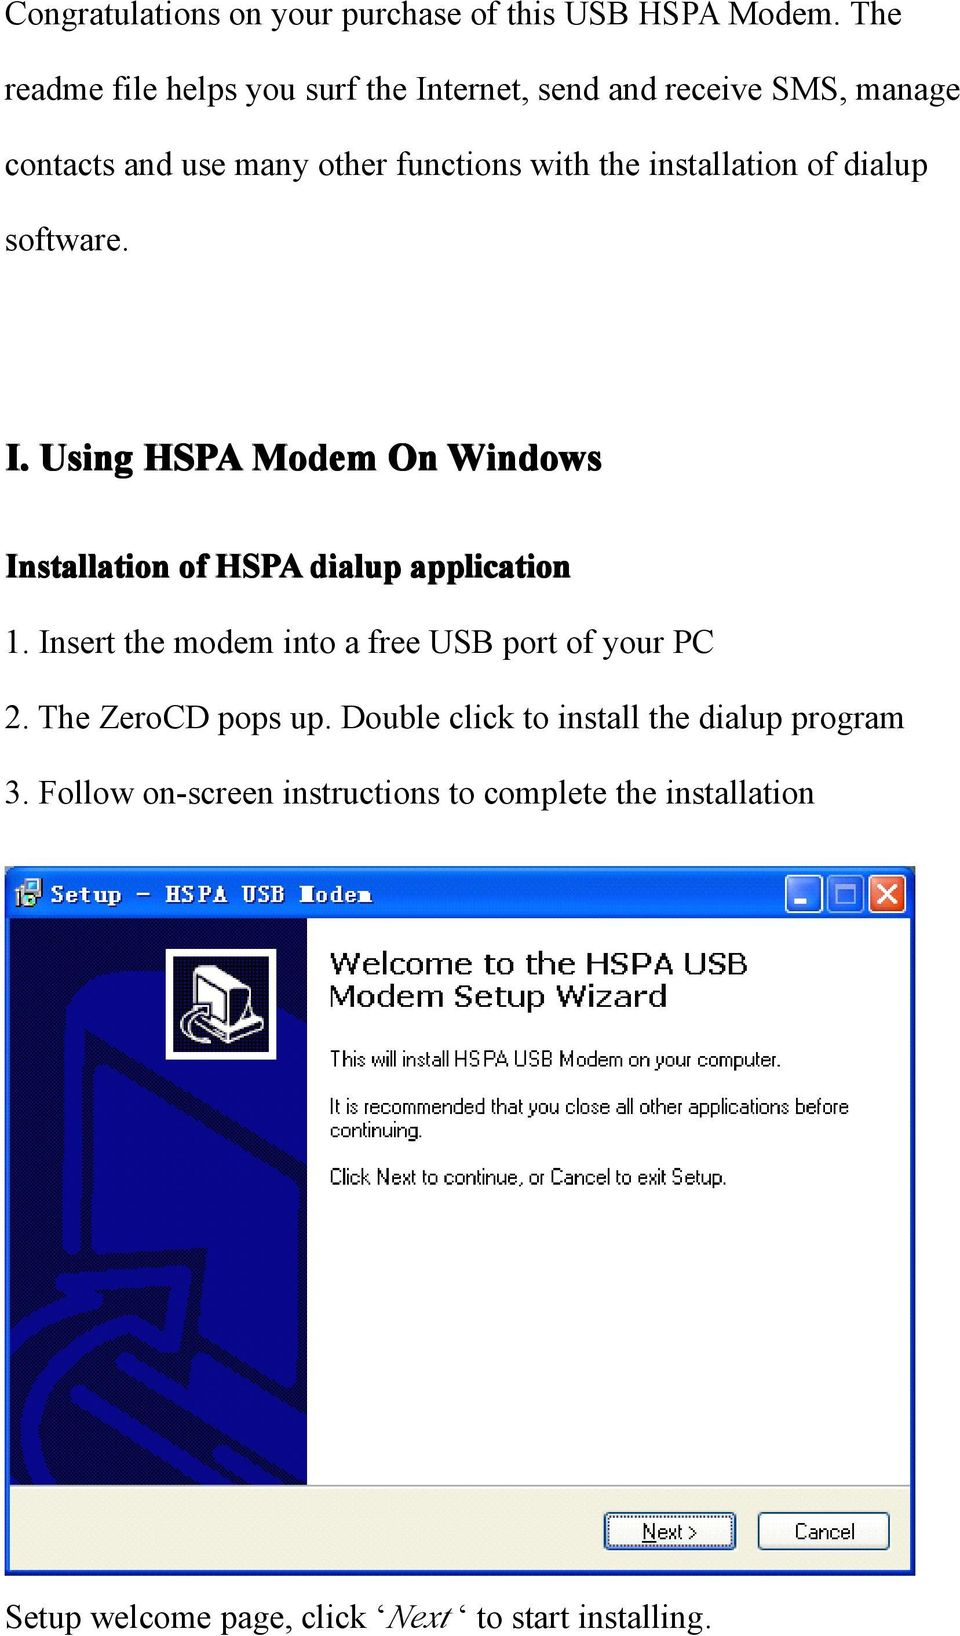 installation of dialup software. I. Using HSPA Modem On Windows Installation of HSPA dialup application 1.